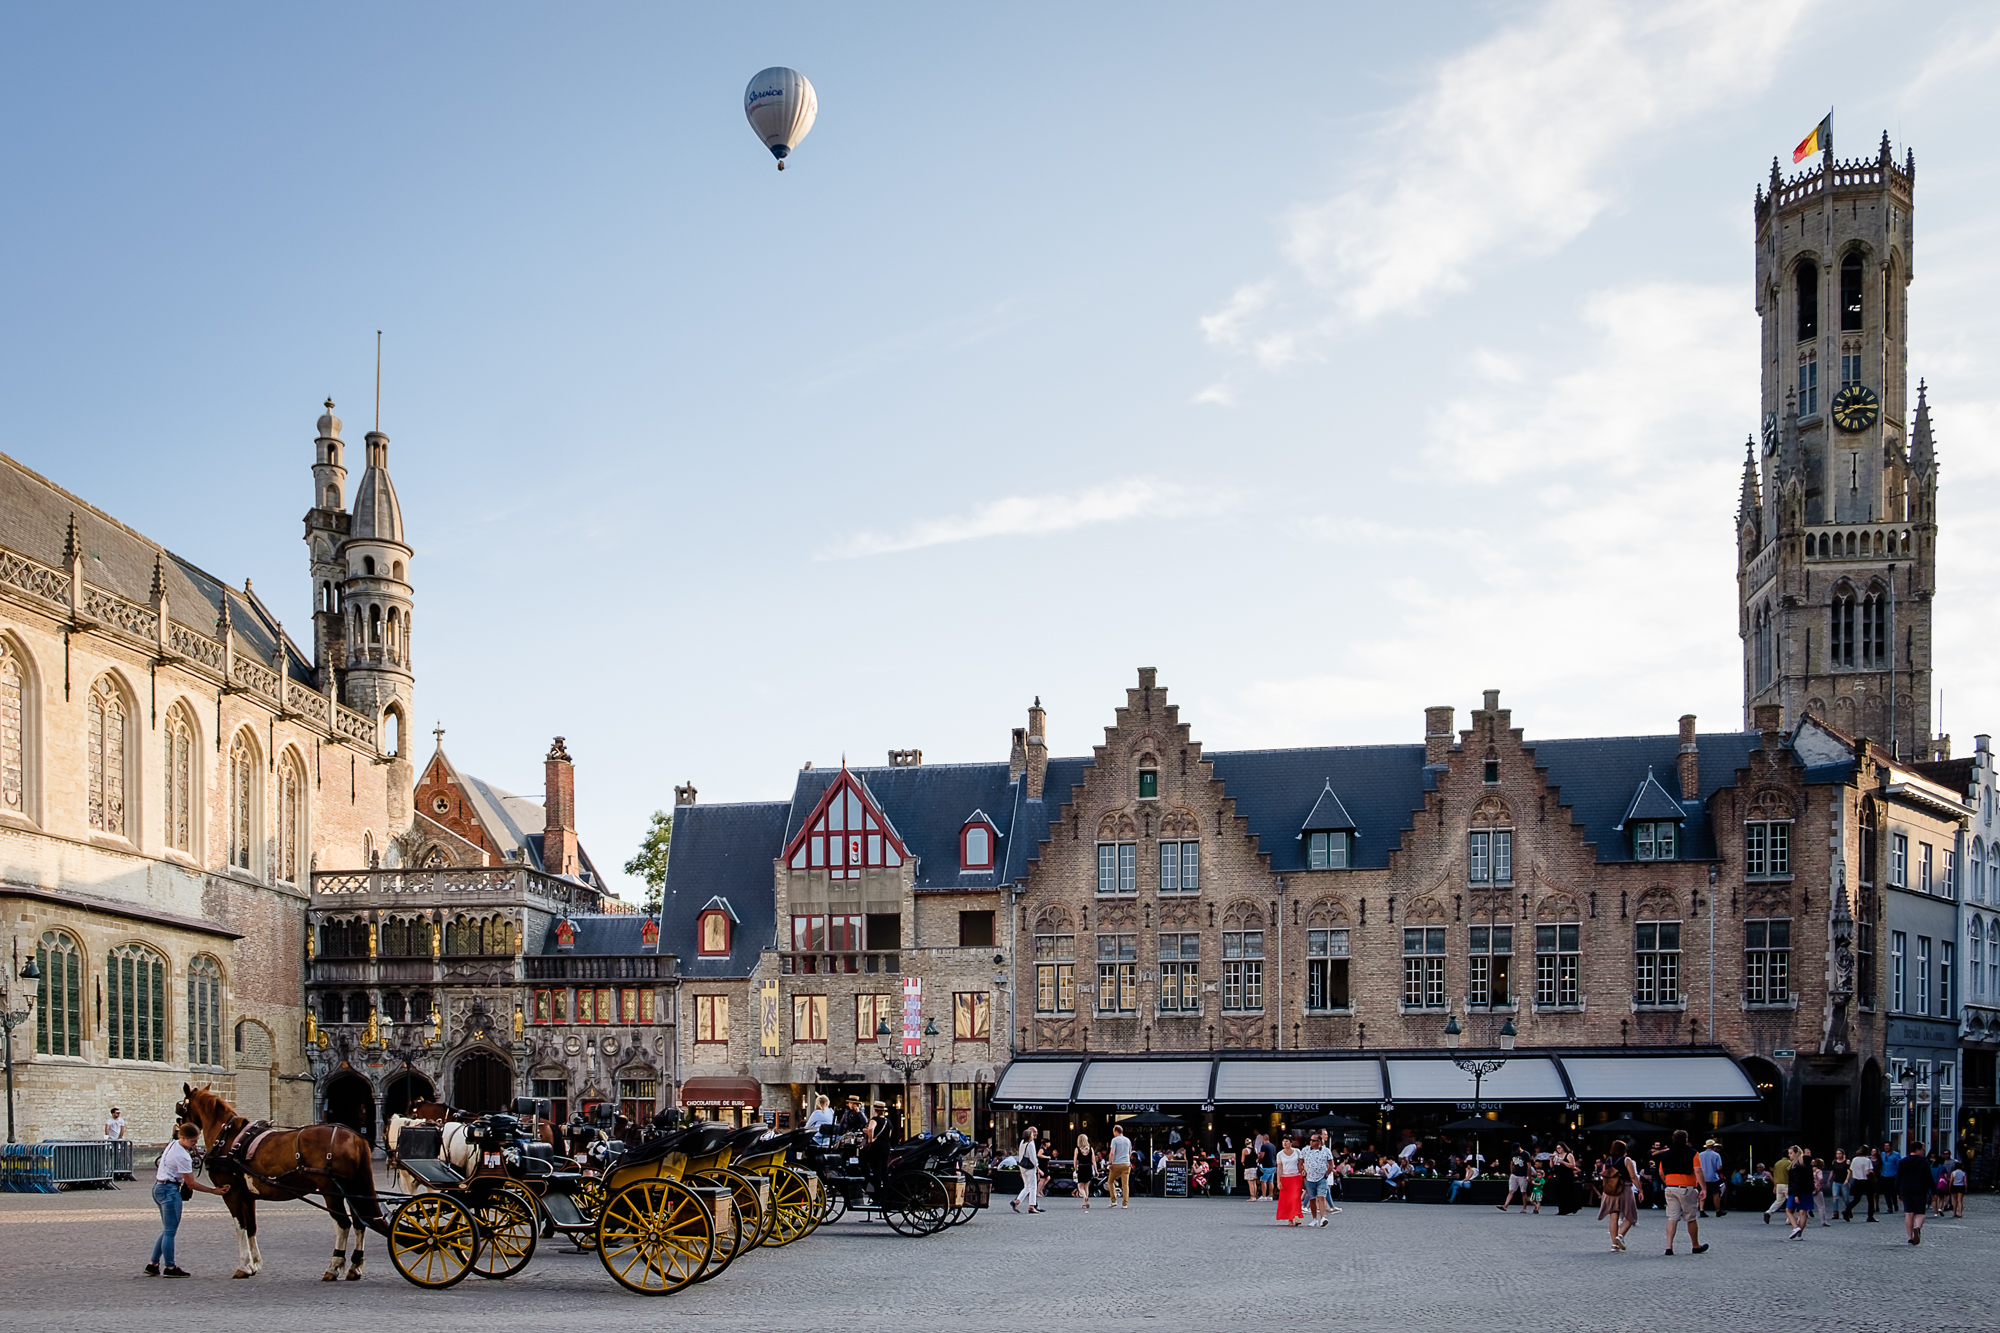 A photo of an air balloon above Burg Square and the Belfry Tower in Bruges, Belgium taken by Trevor Sherwin